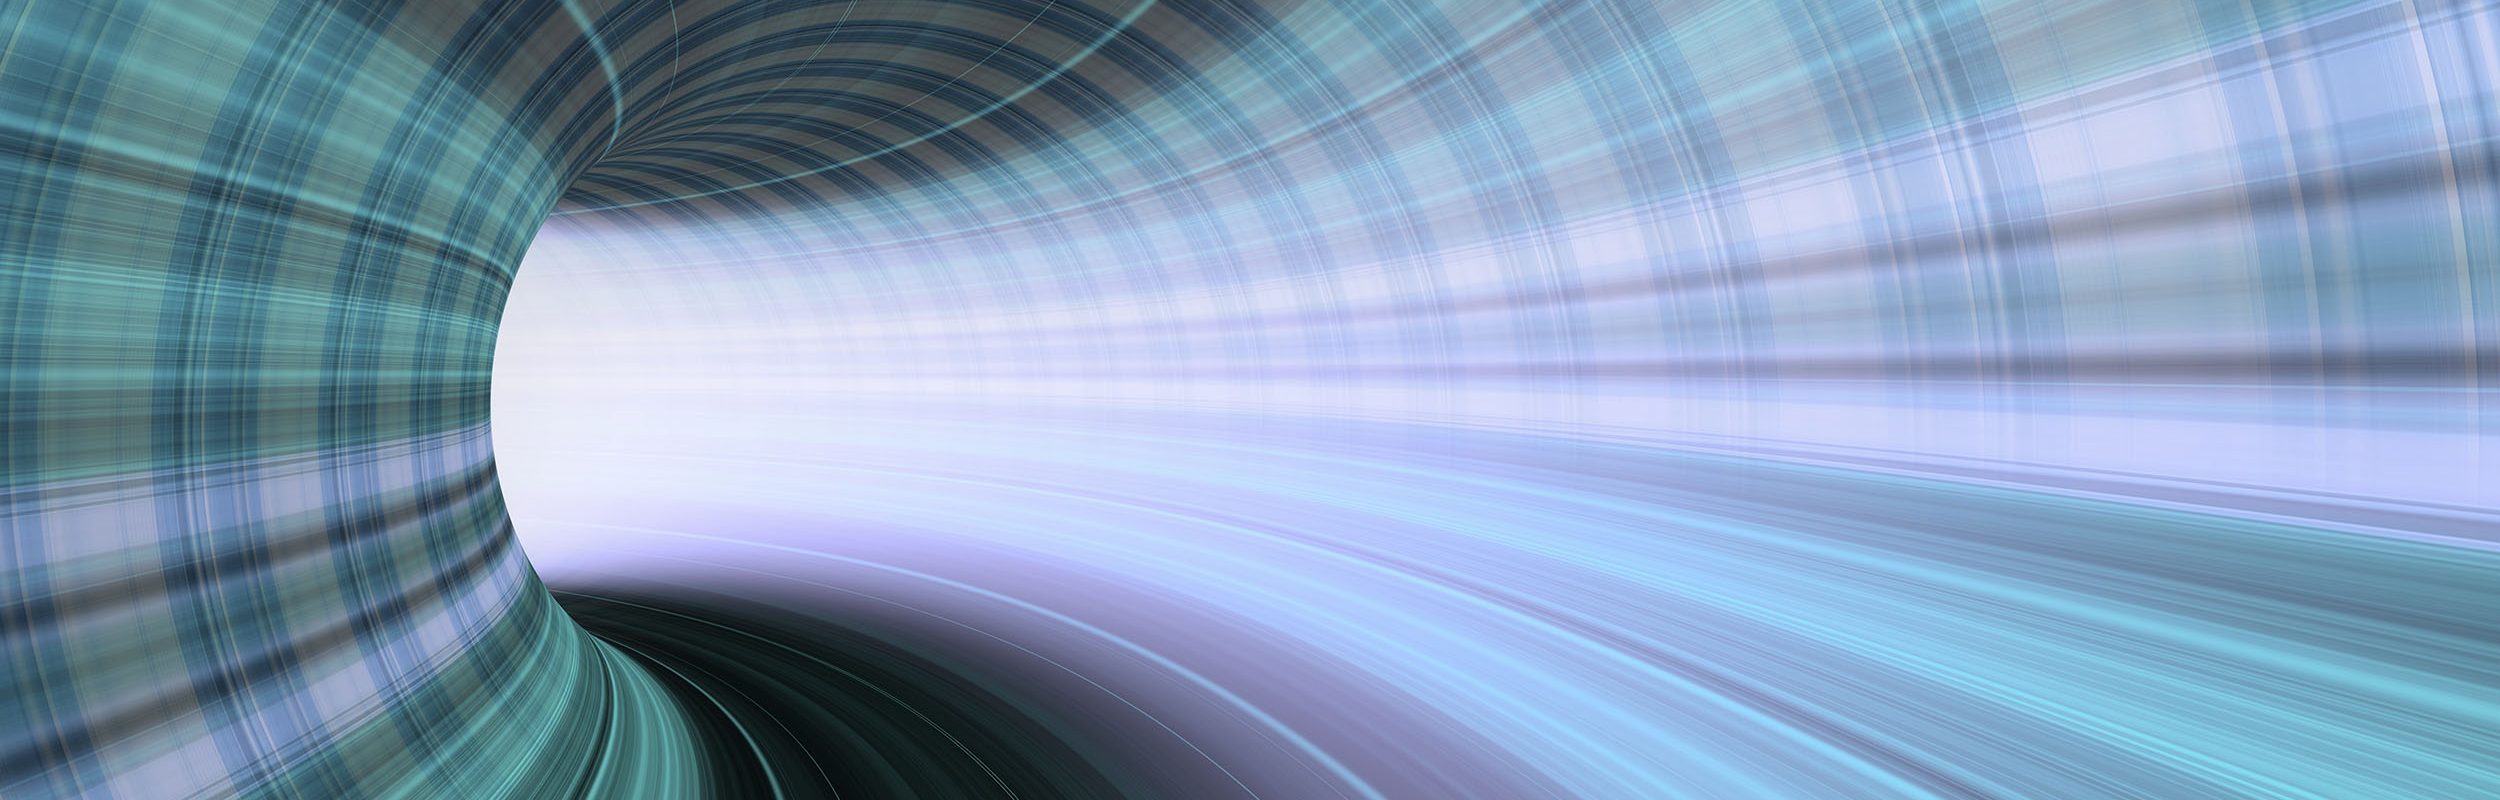 tunnel-abstract-business-vision